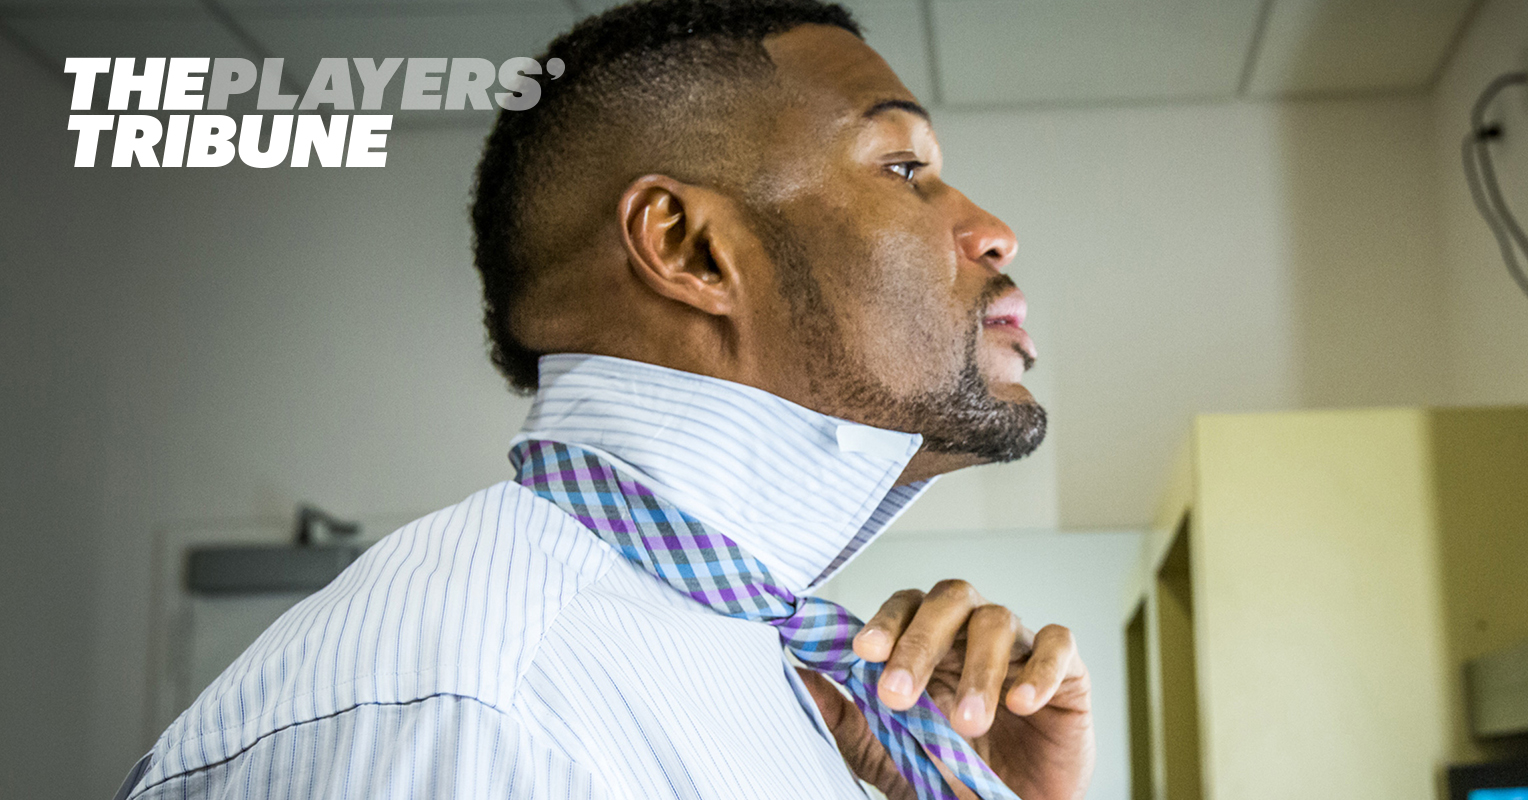 real fan life backstage with michael strahan ben office fan